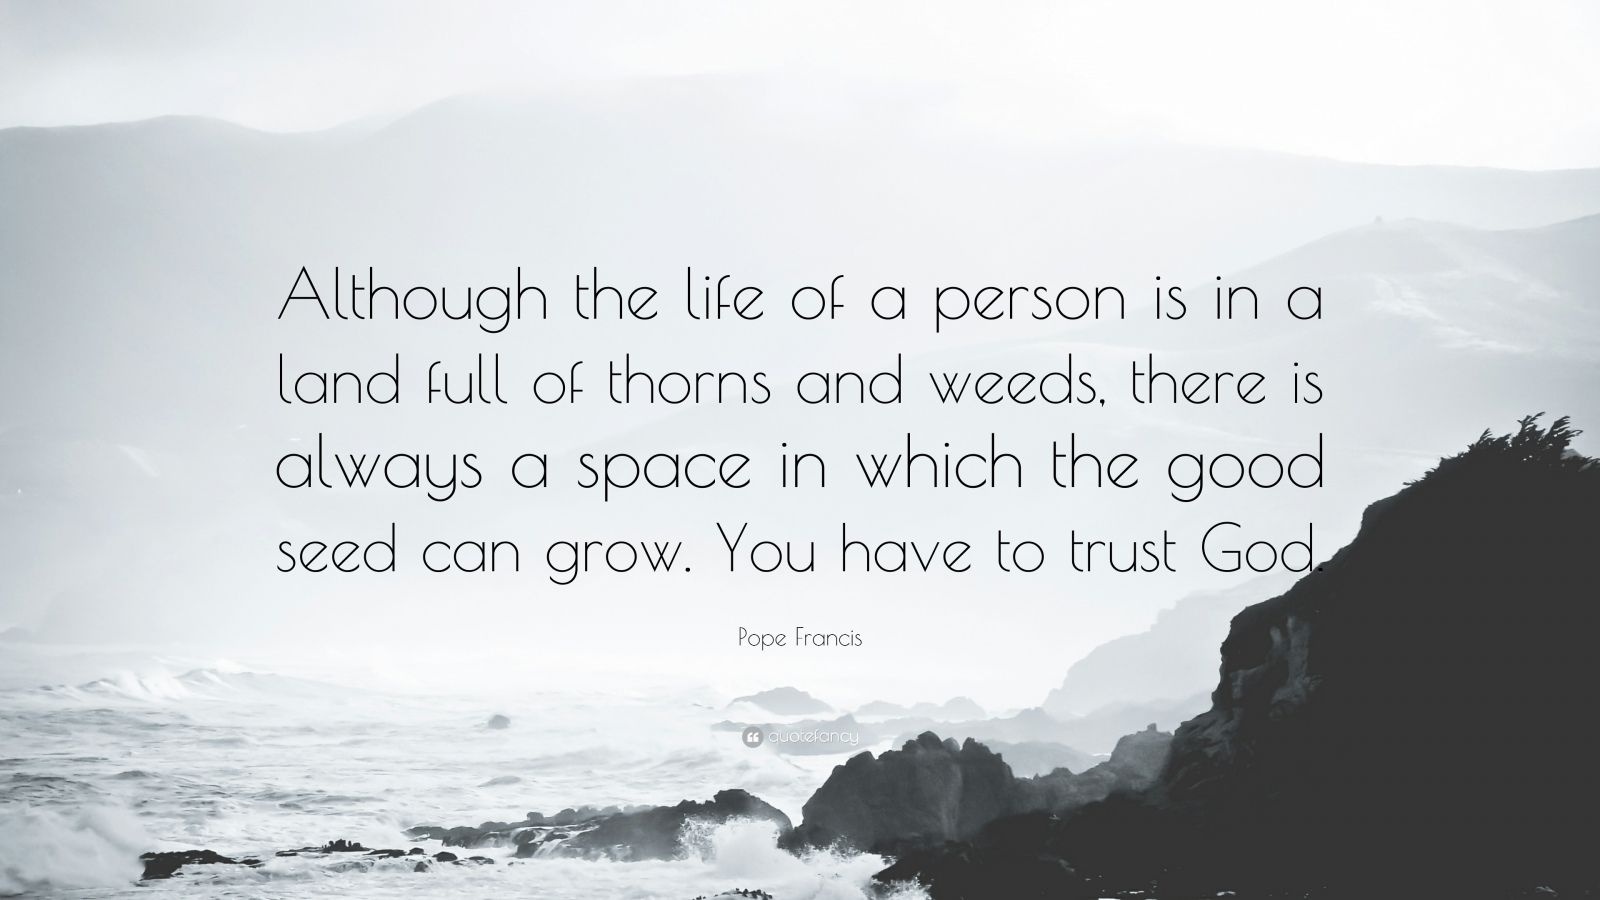 """Pope Francis Quote: """"Although the life of a person is in a land full of thorns and weeds, there is always a space in which the good seed can grow. You have to trust God."""""""